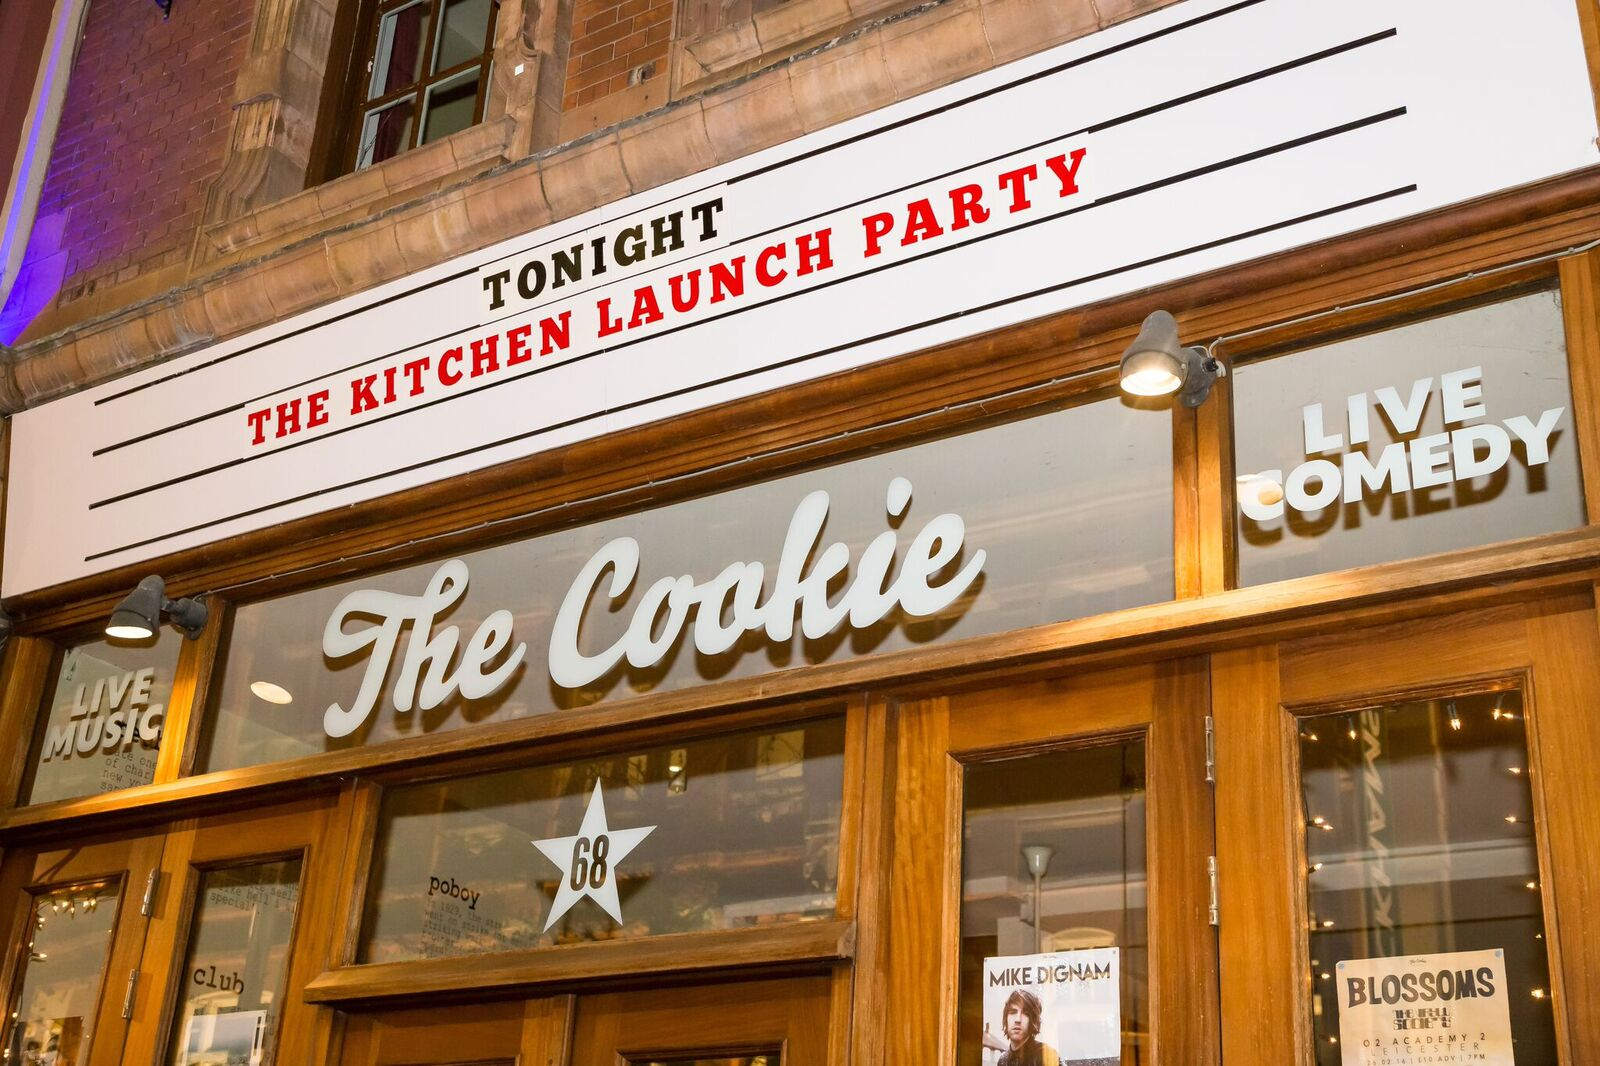 The kitchen launch party Leicester The Cookie music comedy